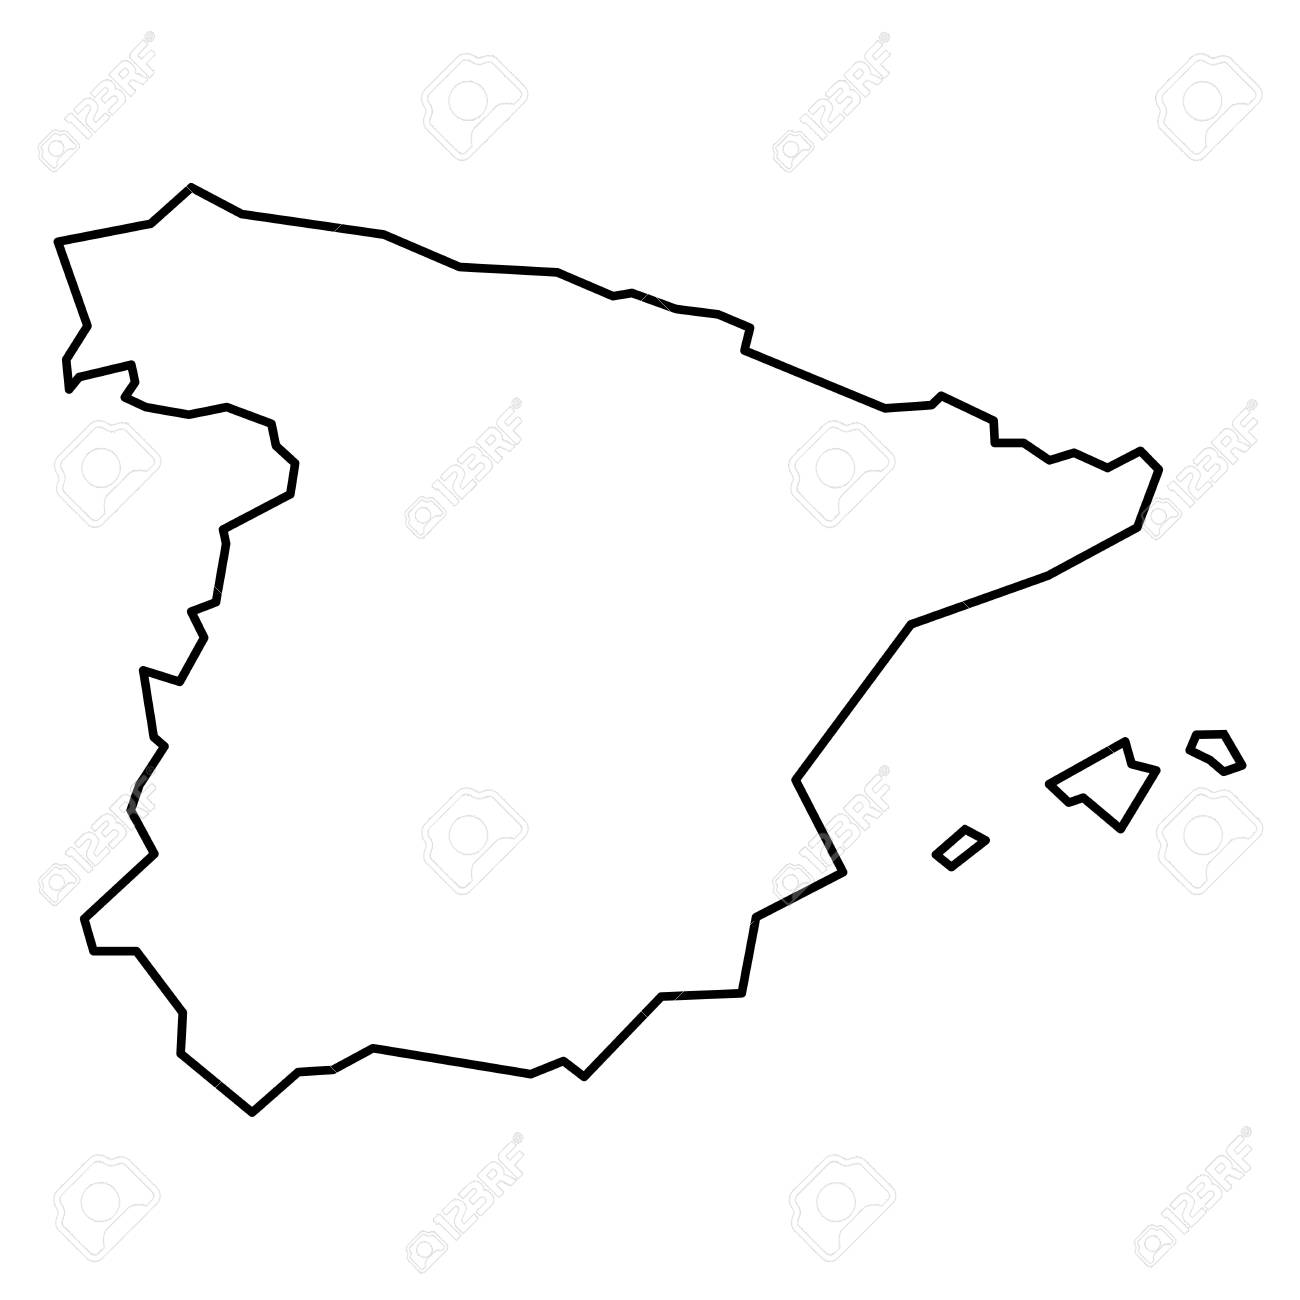 Simple Contour Map Of Spain Black Outline Map Isolated On White